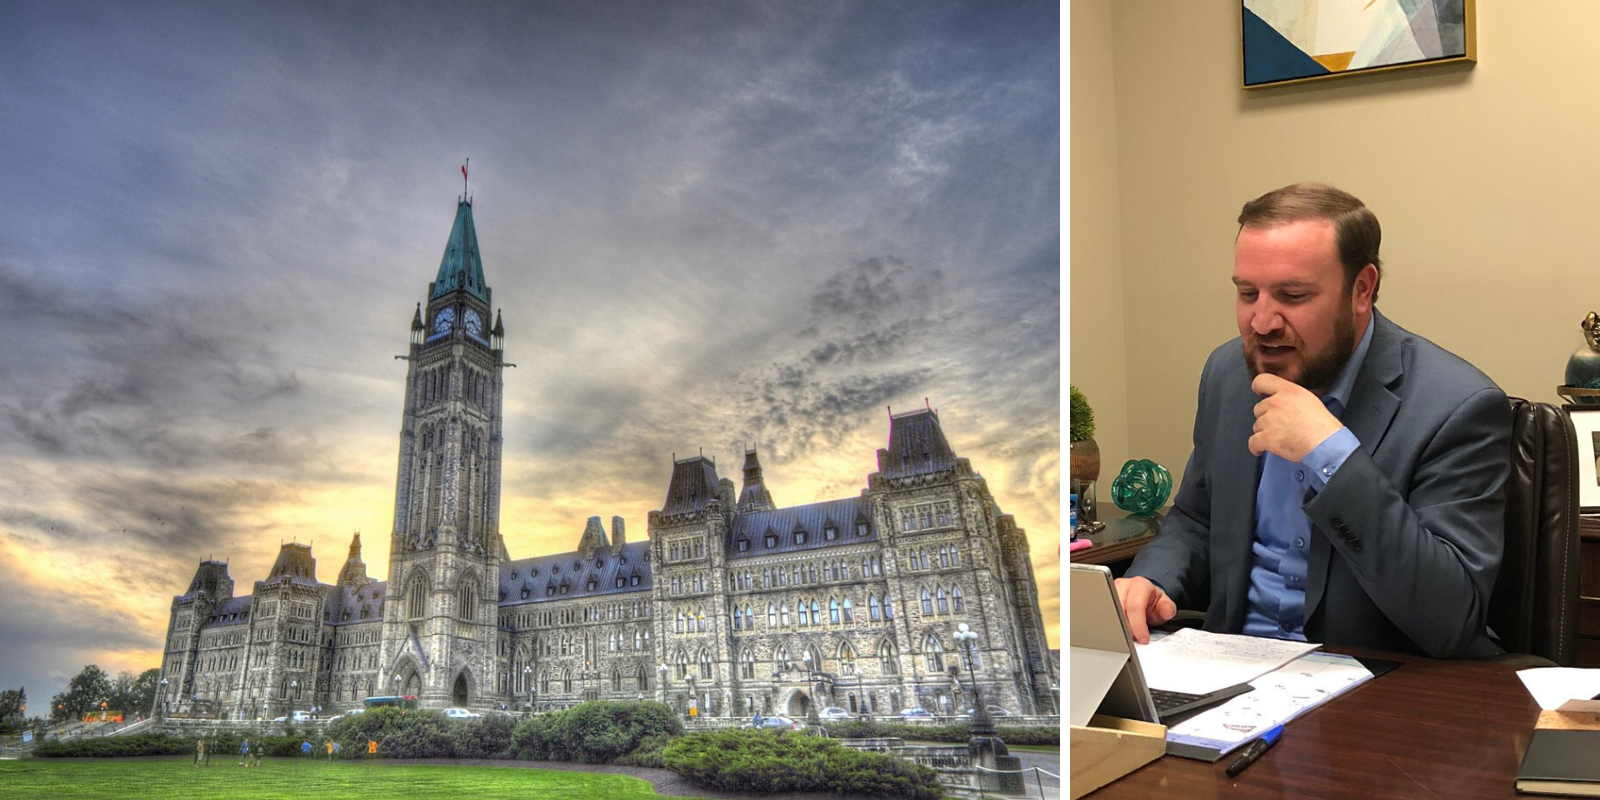 Conservative MPs outraged by $3.04 BILLION Parliament Hill renovation